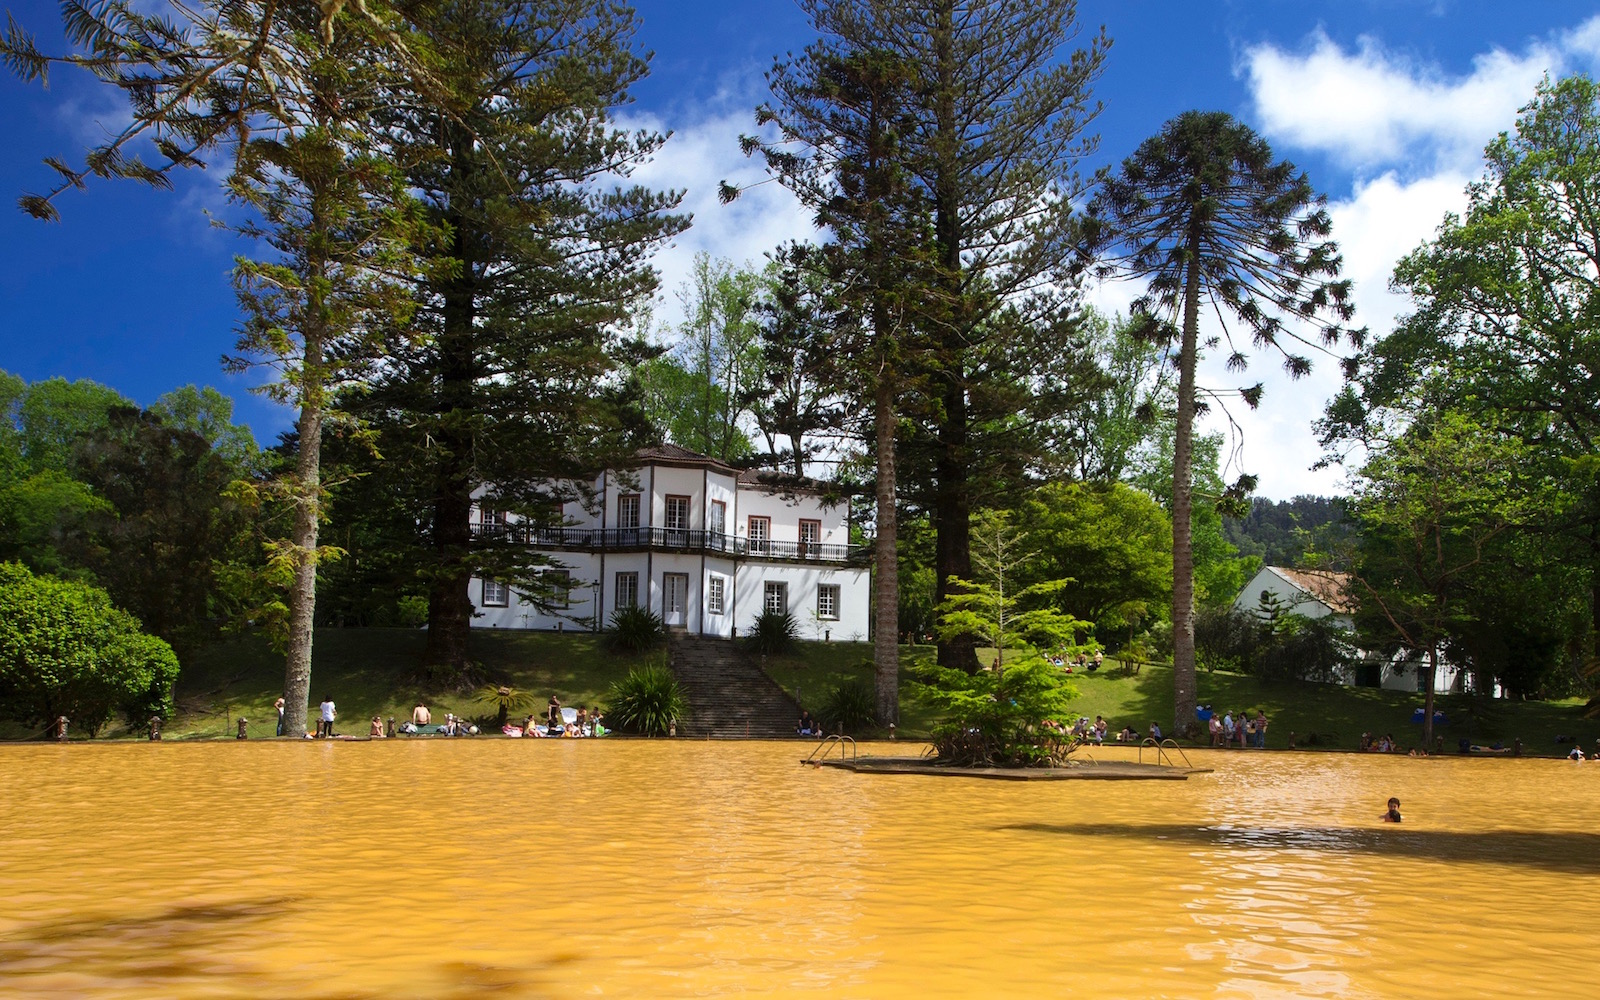 Thermal Pool at Terra Nostra Park in Furnas, Sao Miguel, Azores